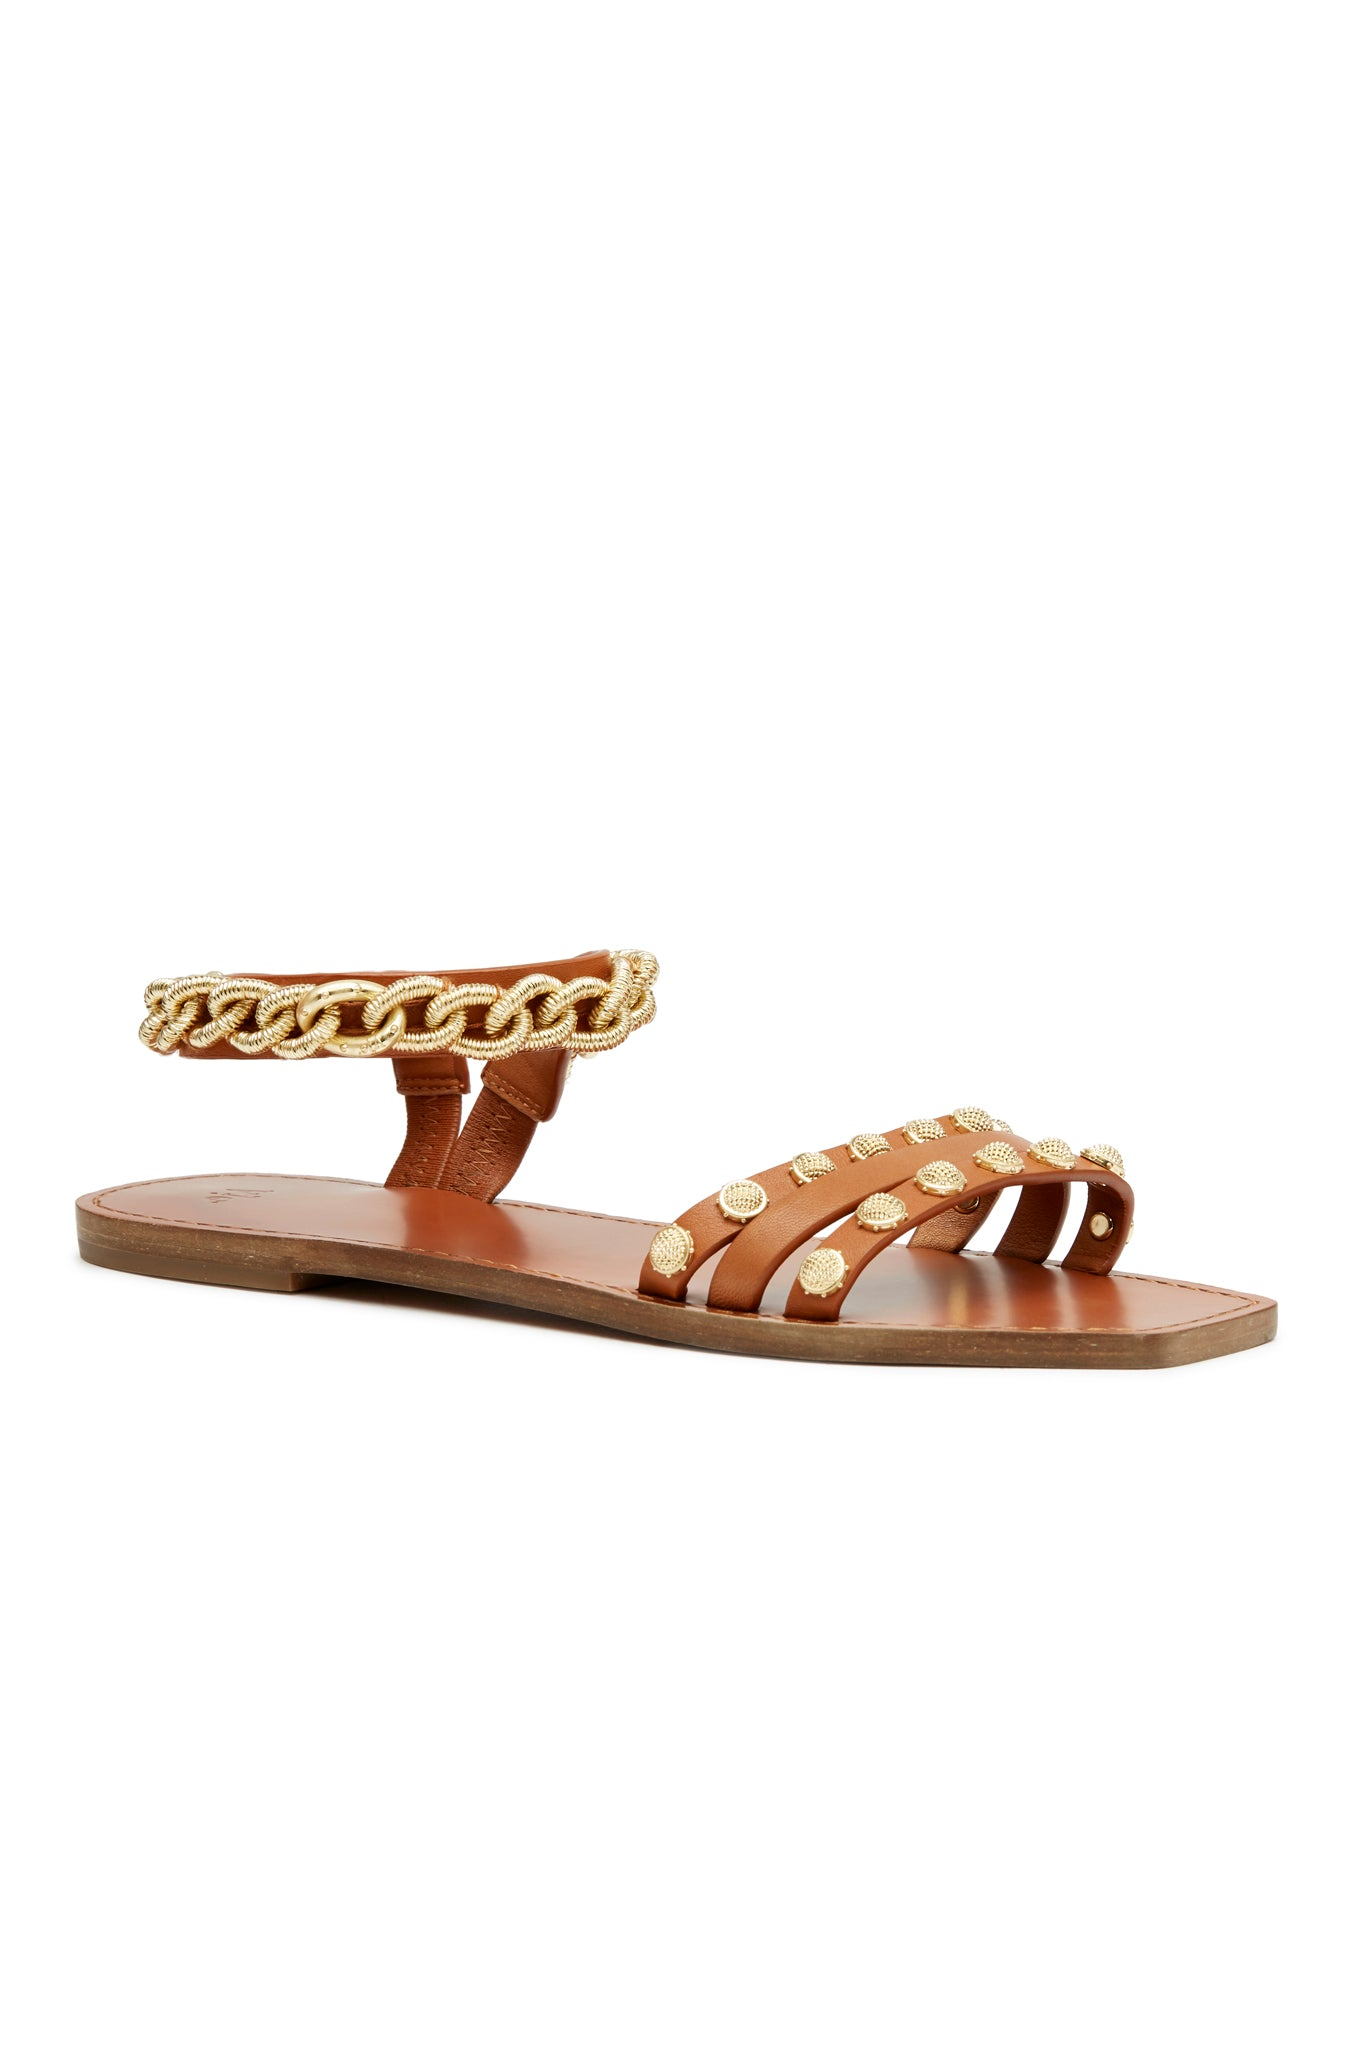 Jagger Sandal Product View